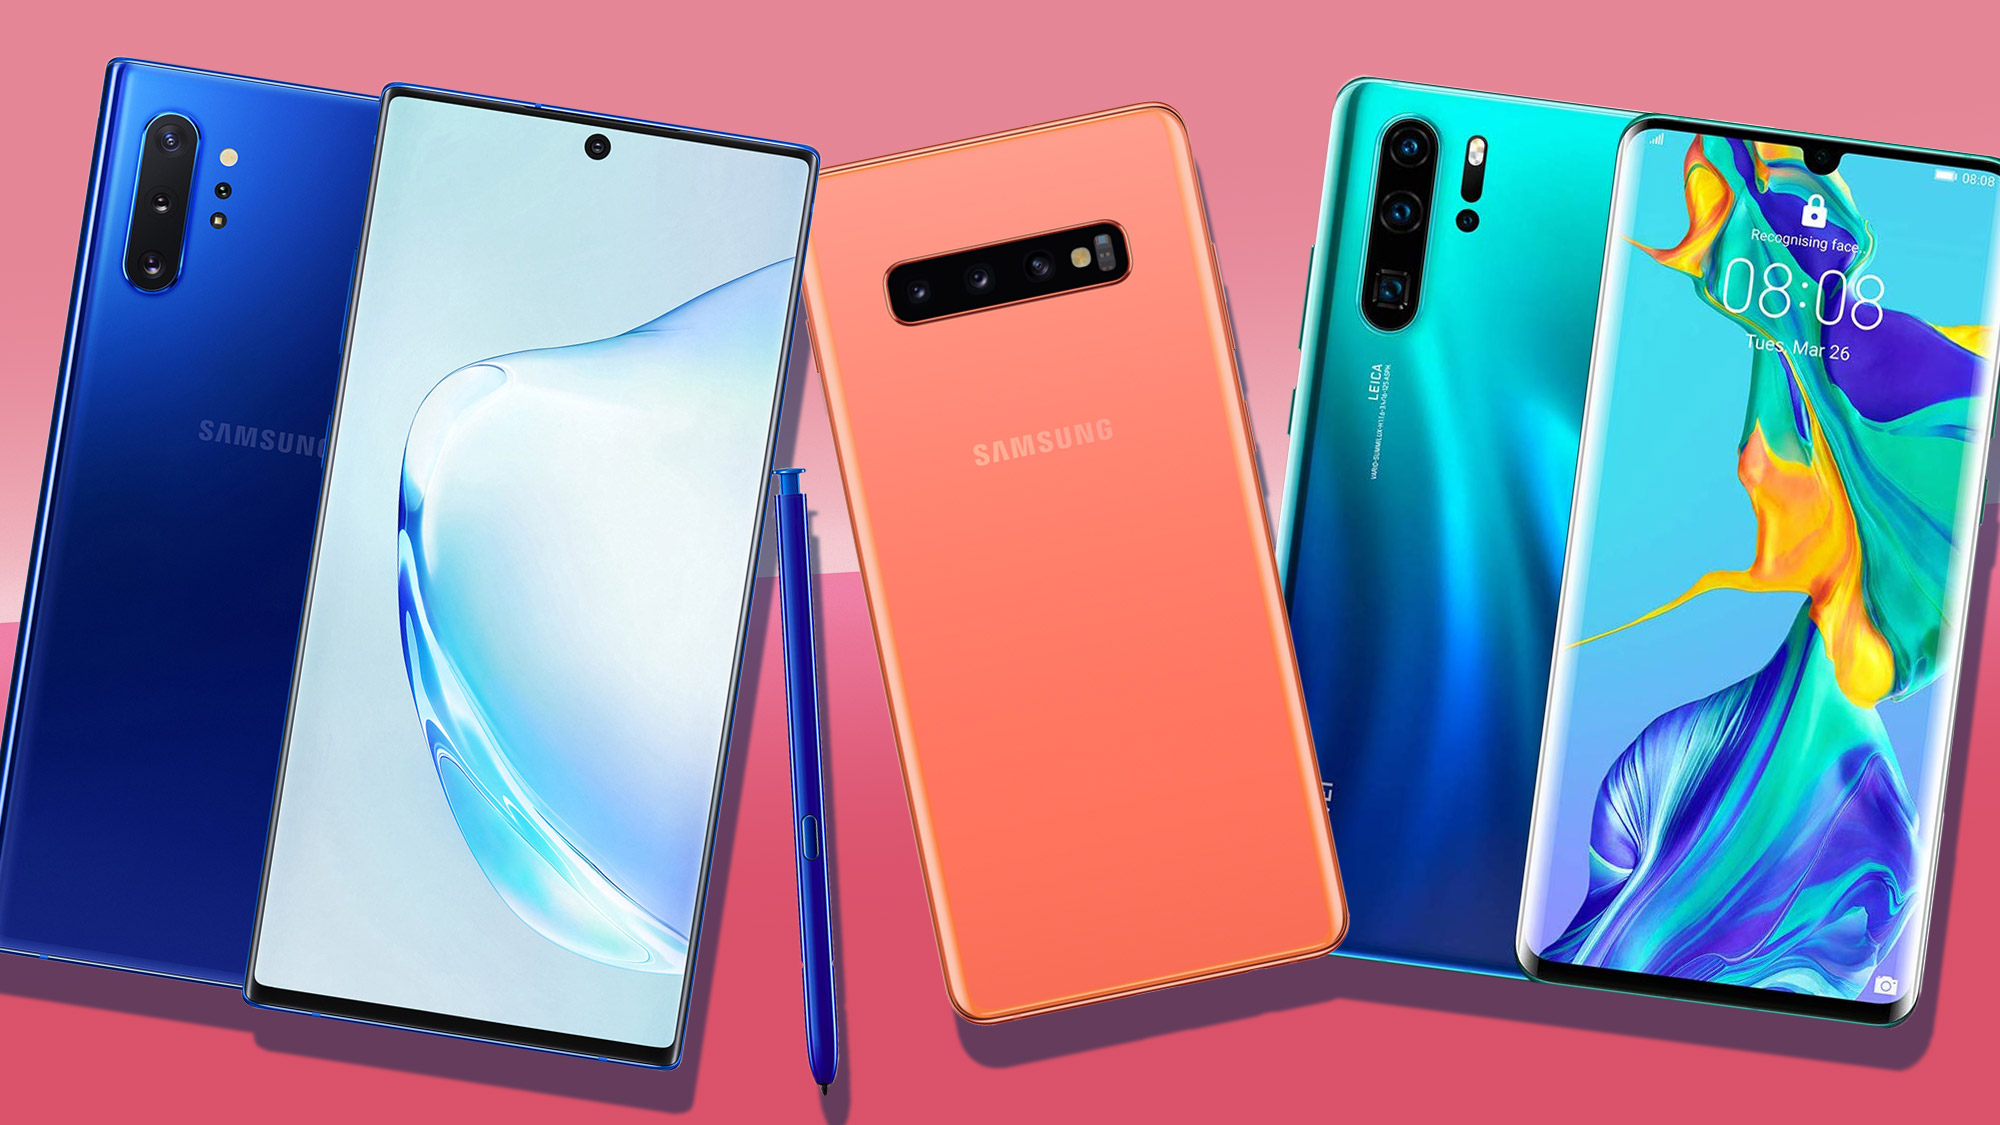 2019 in smartphones: from foldable phones to the introduction of 5G